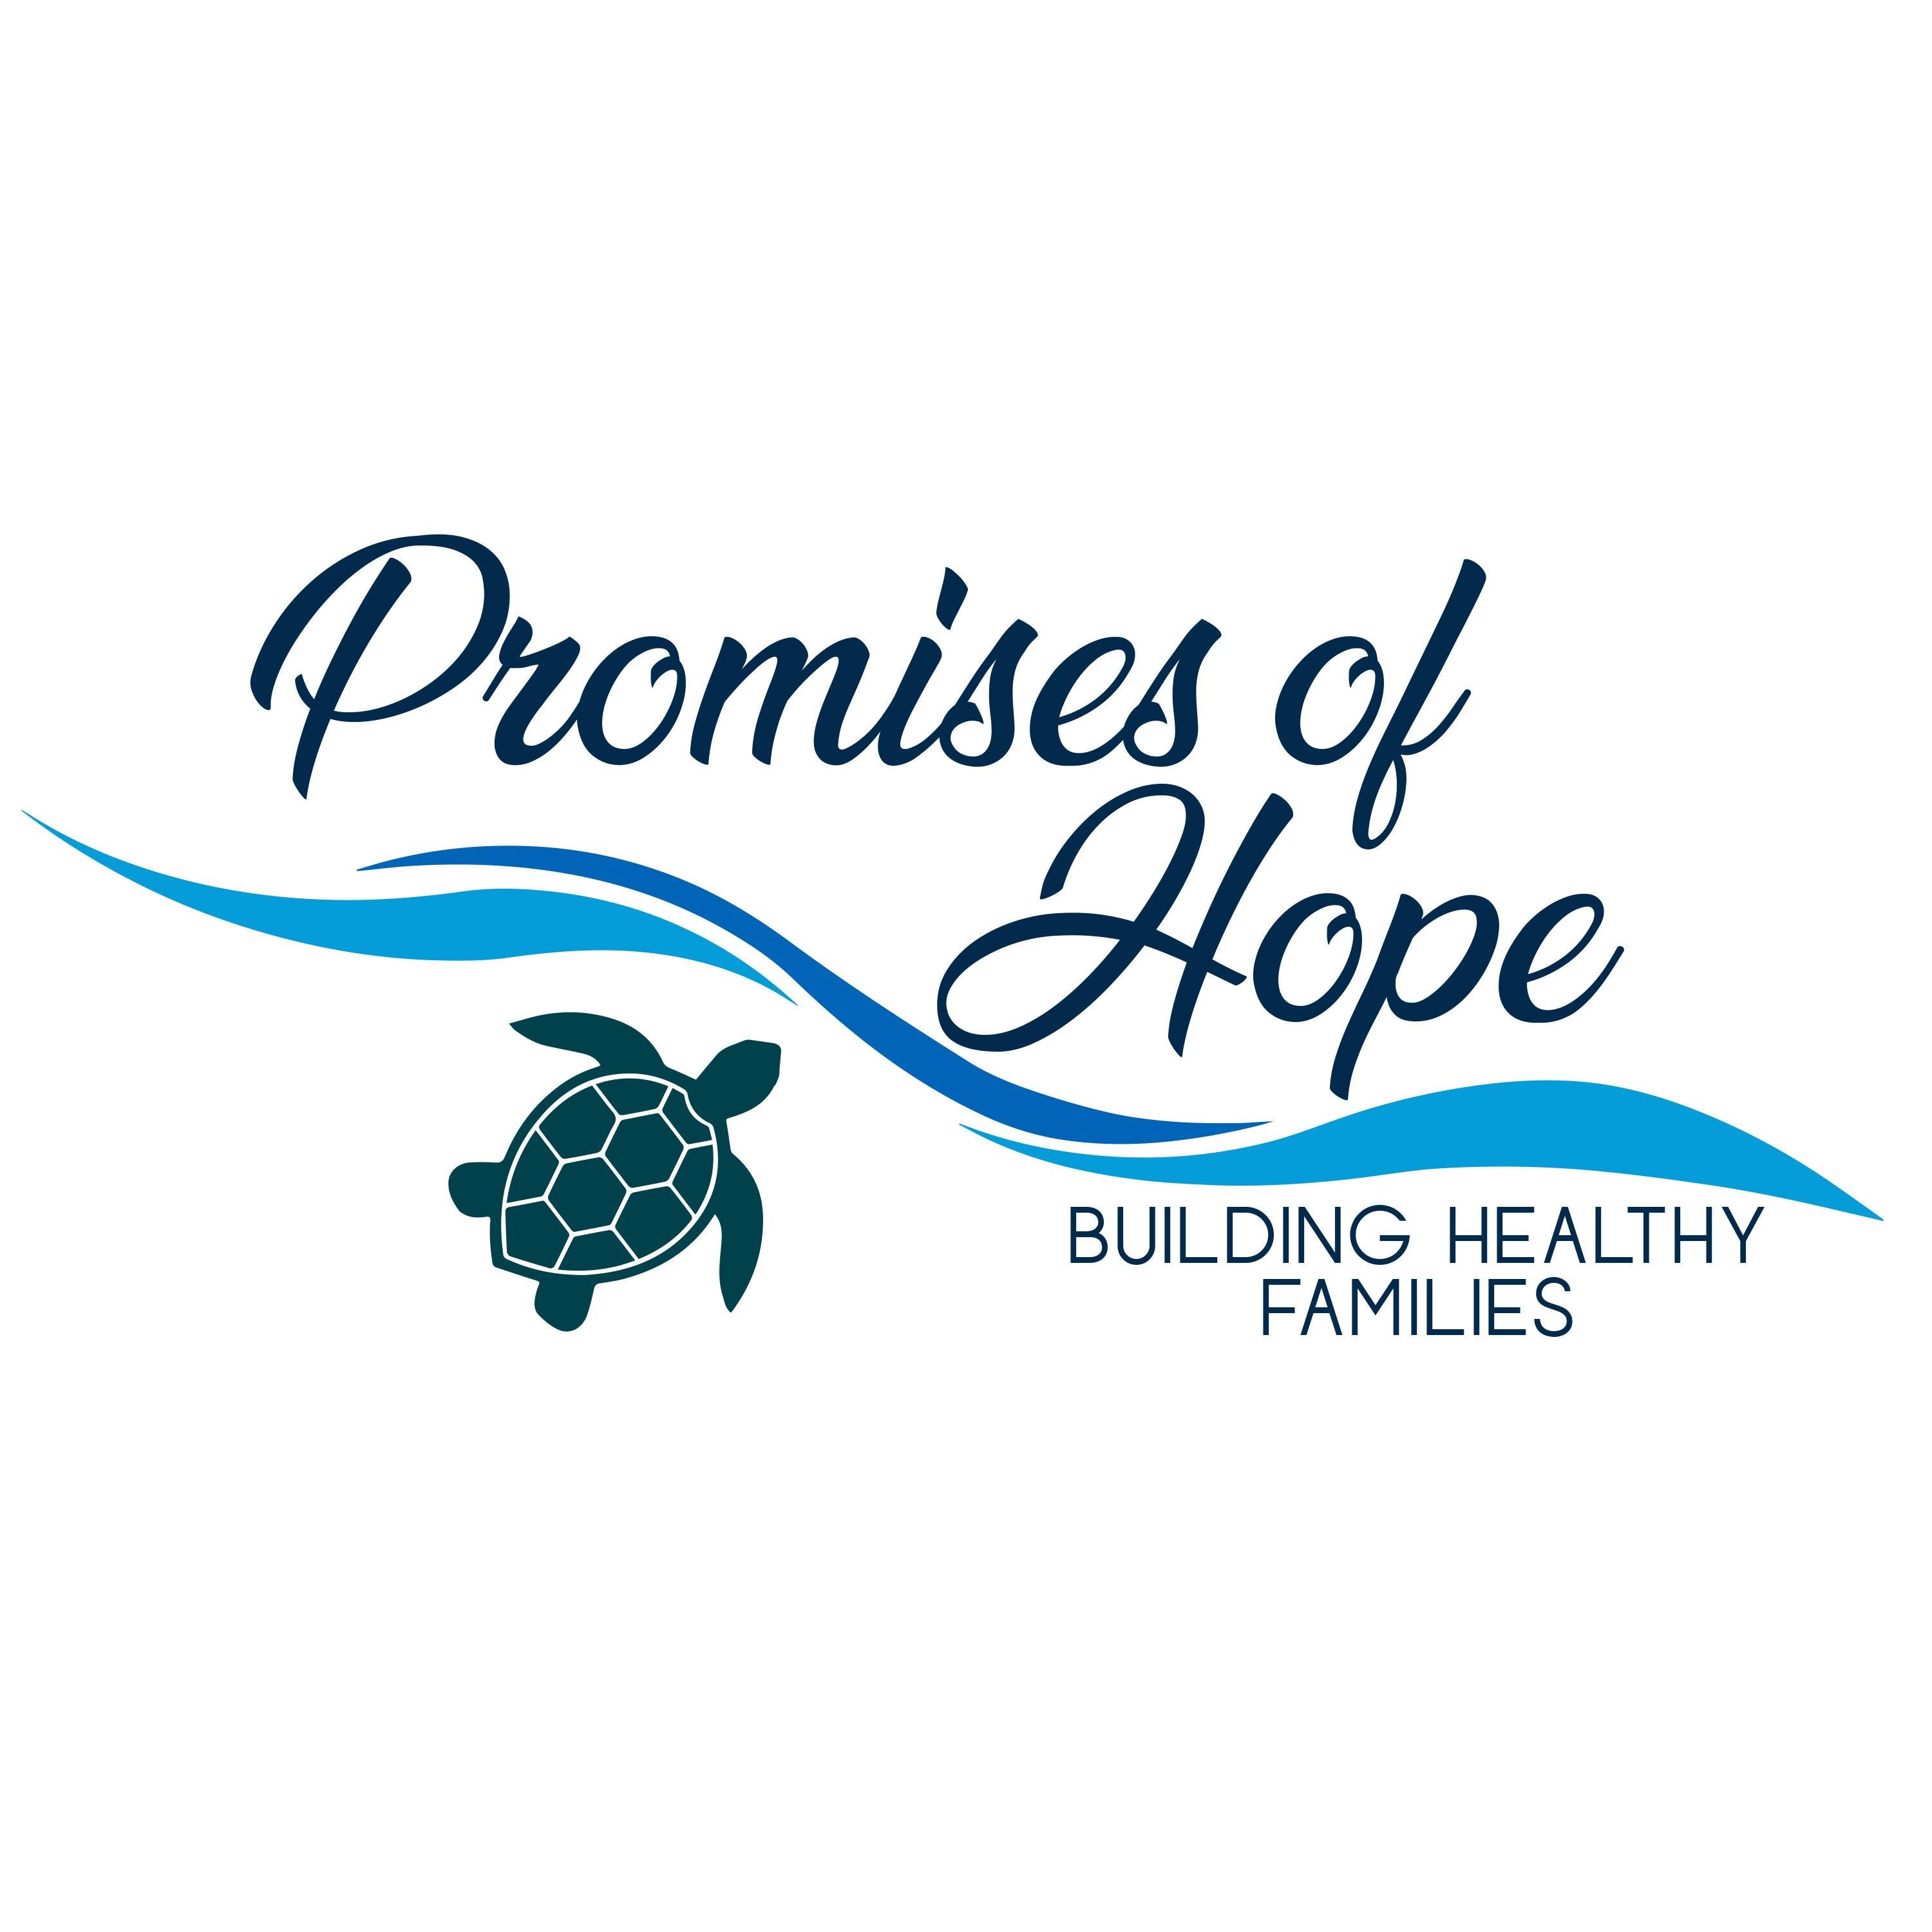 Promises of Hope Vision Banquet